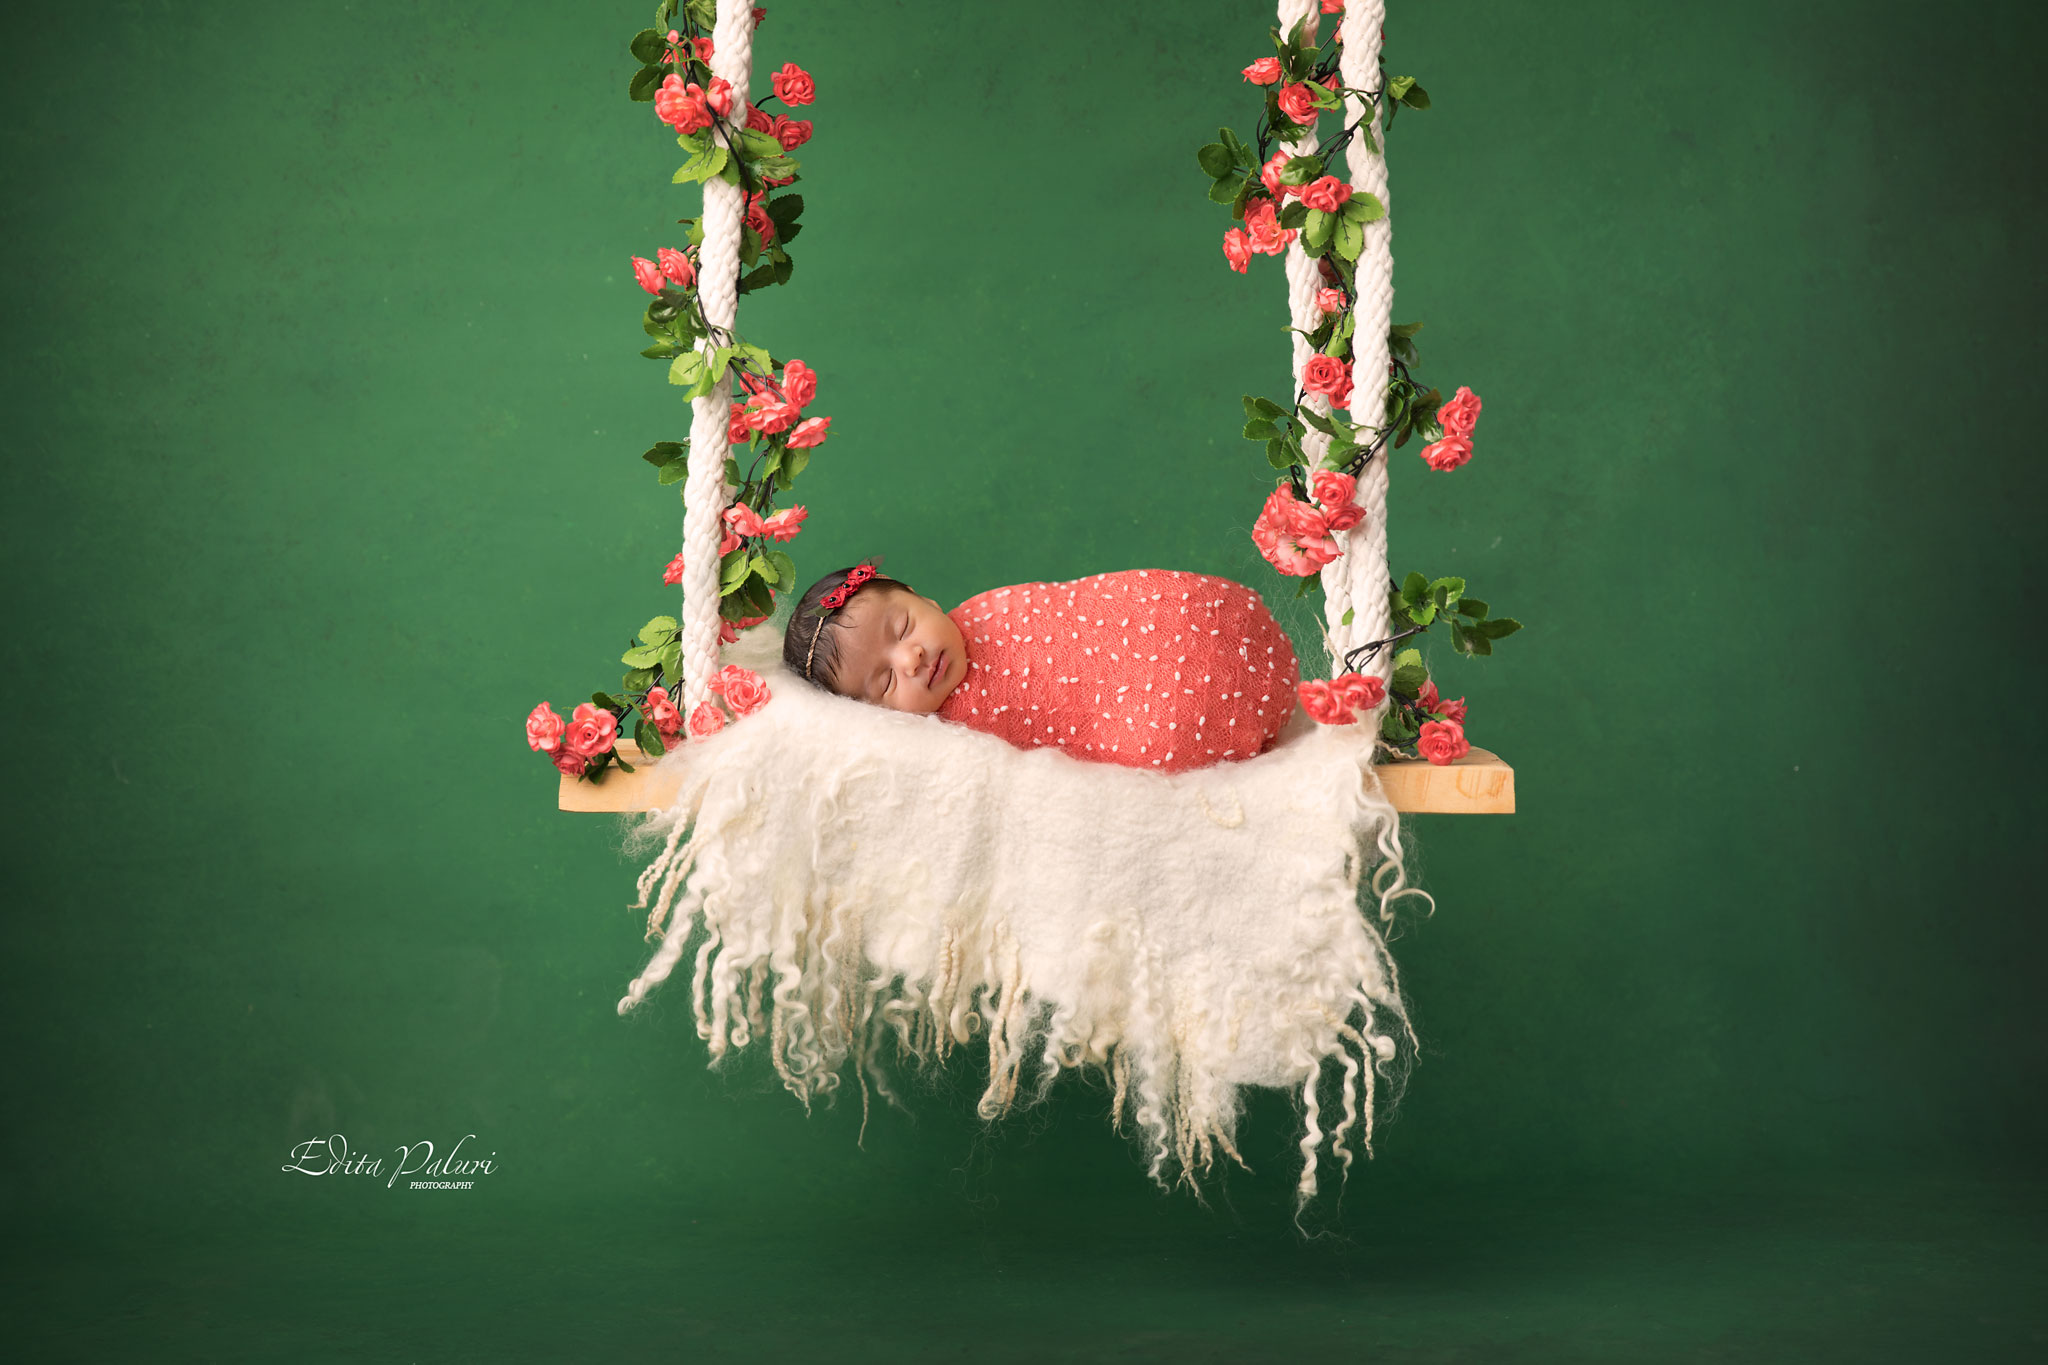 Newborn baby girl on swings picture